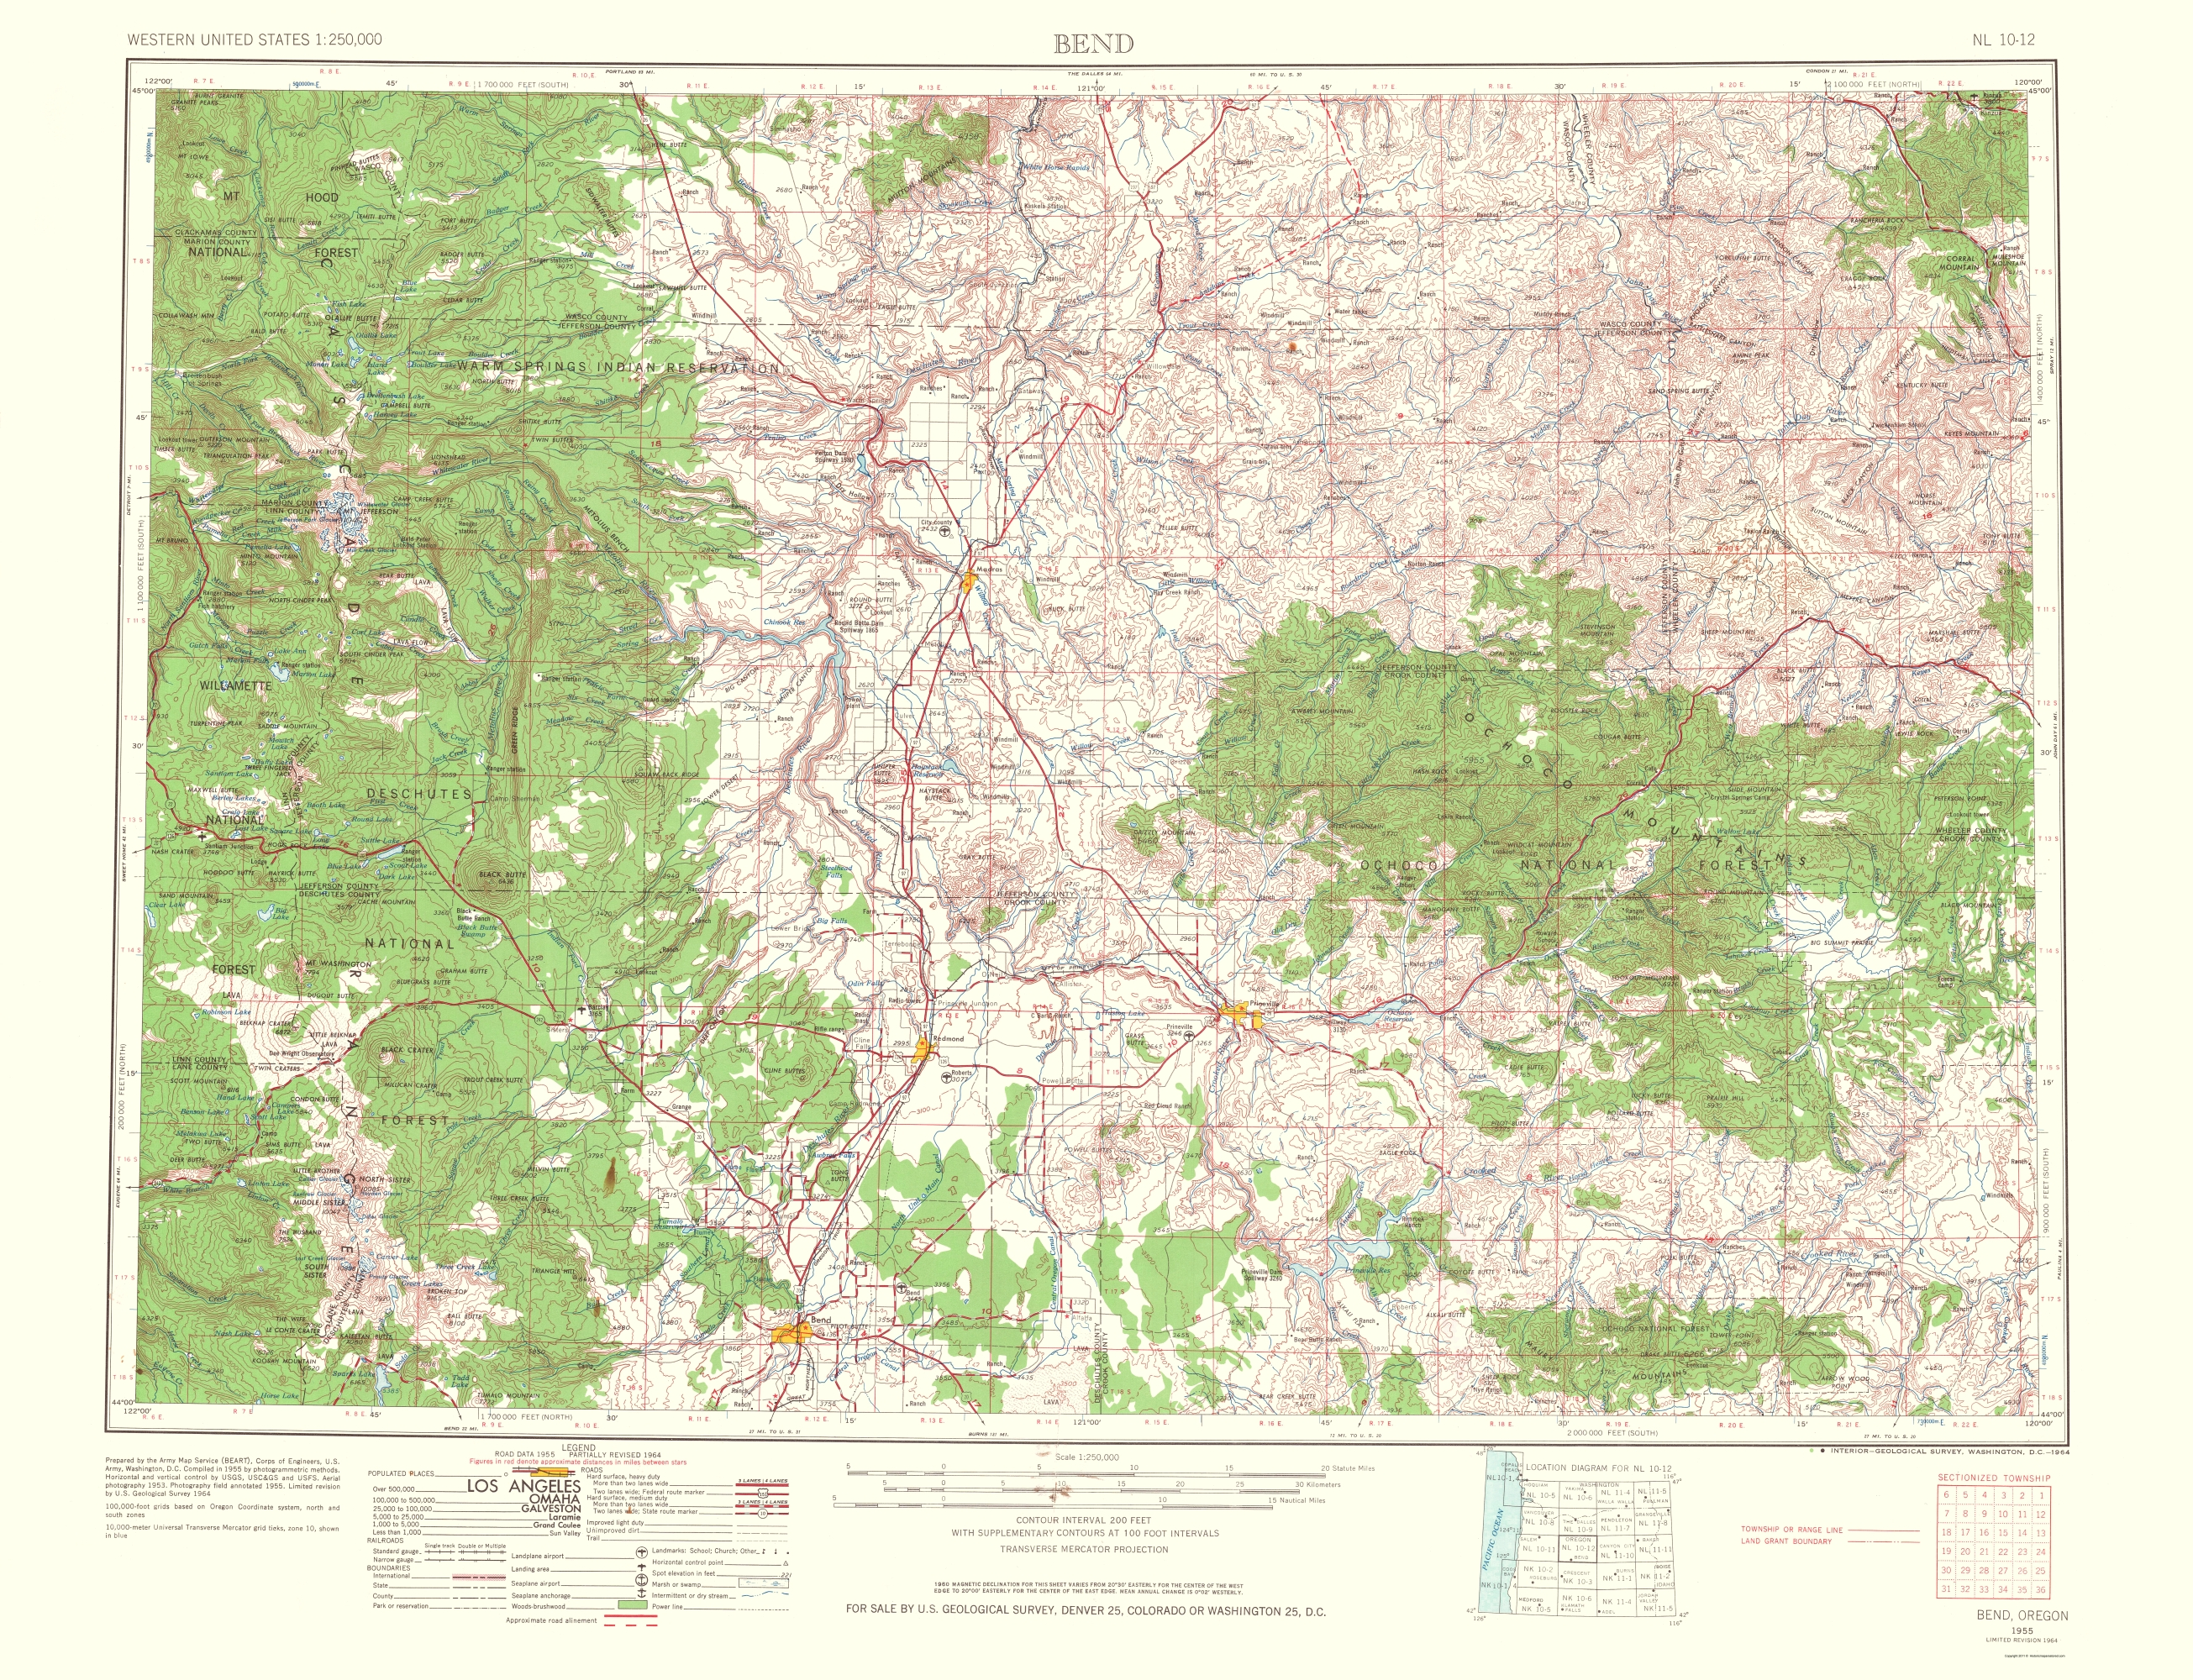 bend oregon elevation map Old Topographical Map Bend Oregon 1964 bend oregon elevation map